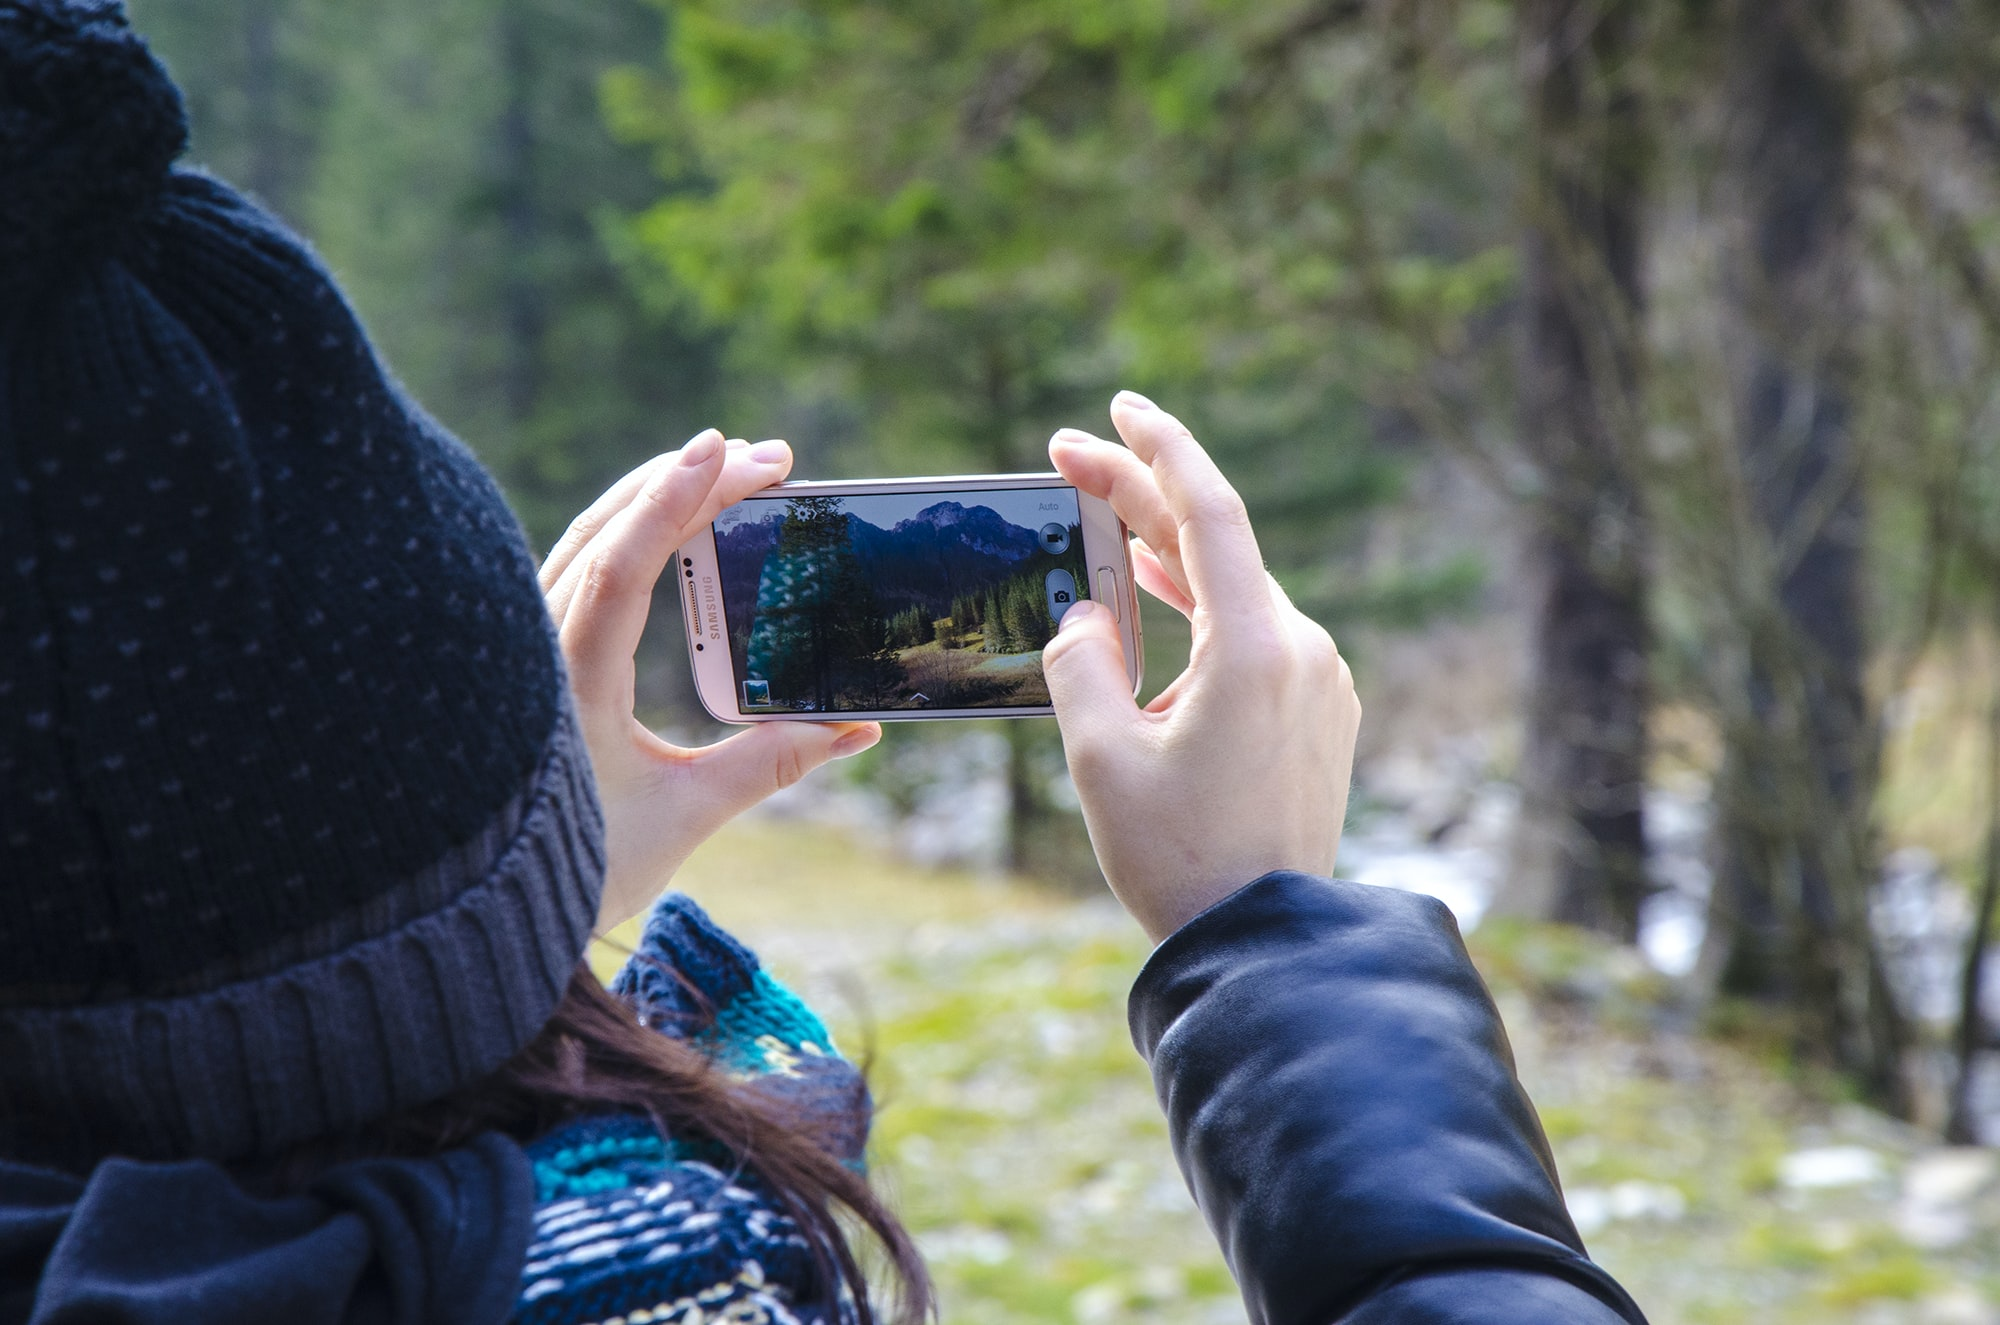 A woman taking a photo of the forest with an iPhone Cellphone